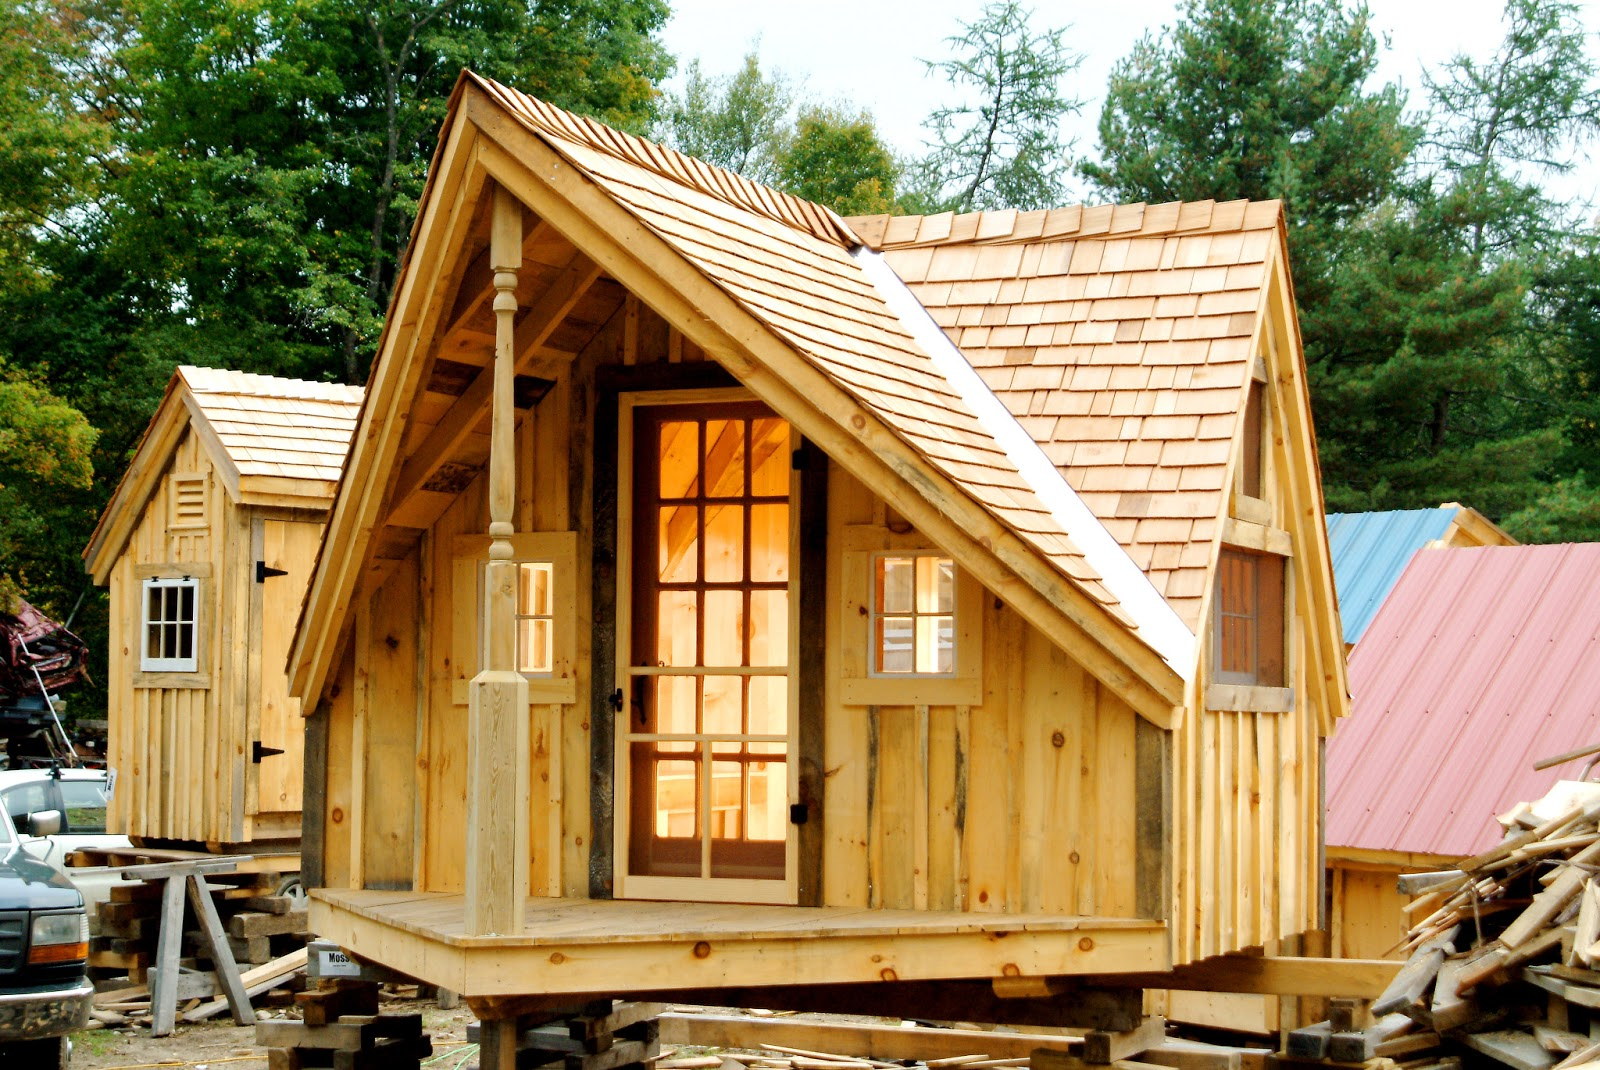 WIN a full set of Jamaica Cottage Shop Cabin/Tiny House Plans